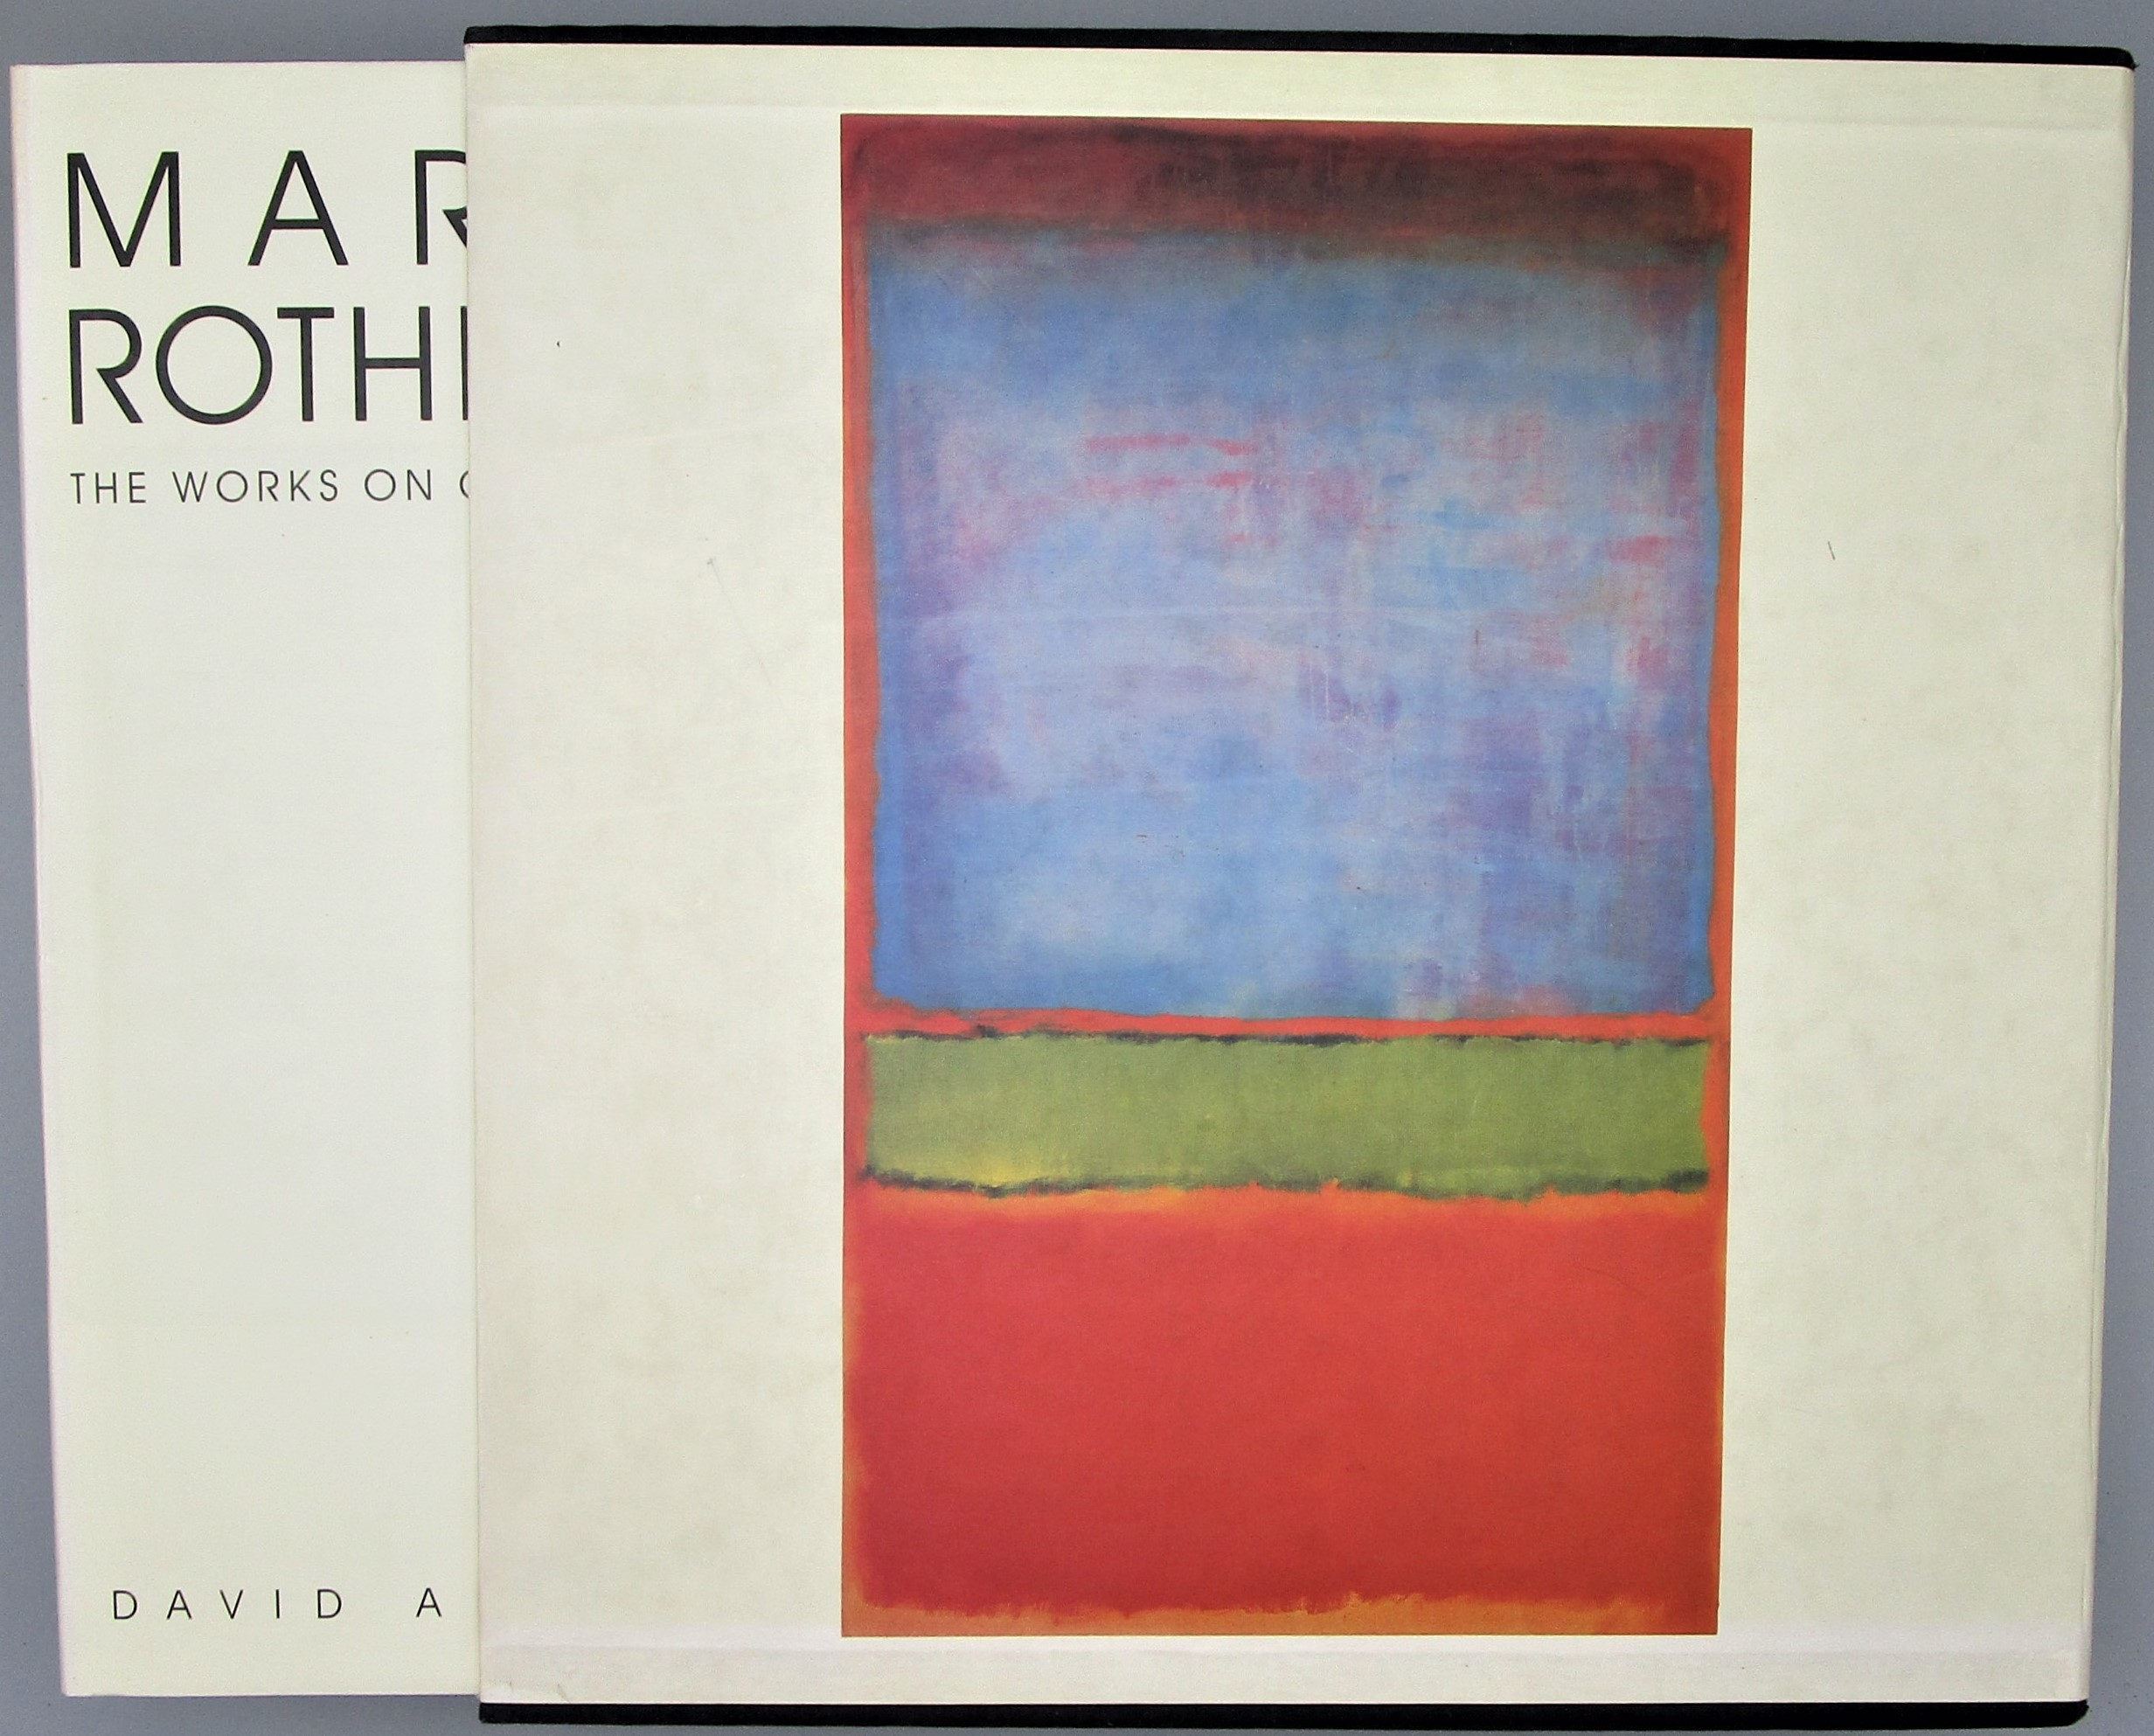 MARK ROTHKO: THE WORKS ON CANVAS, by David Anfam - 1998